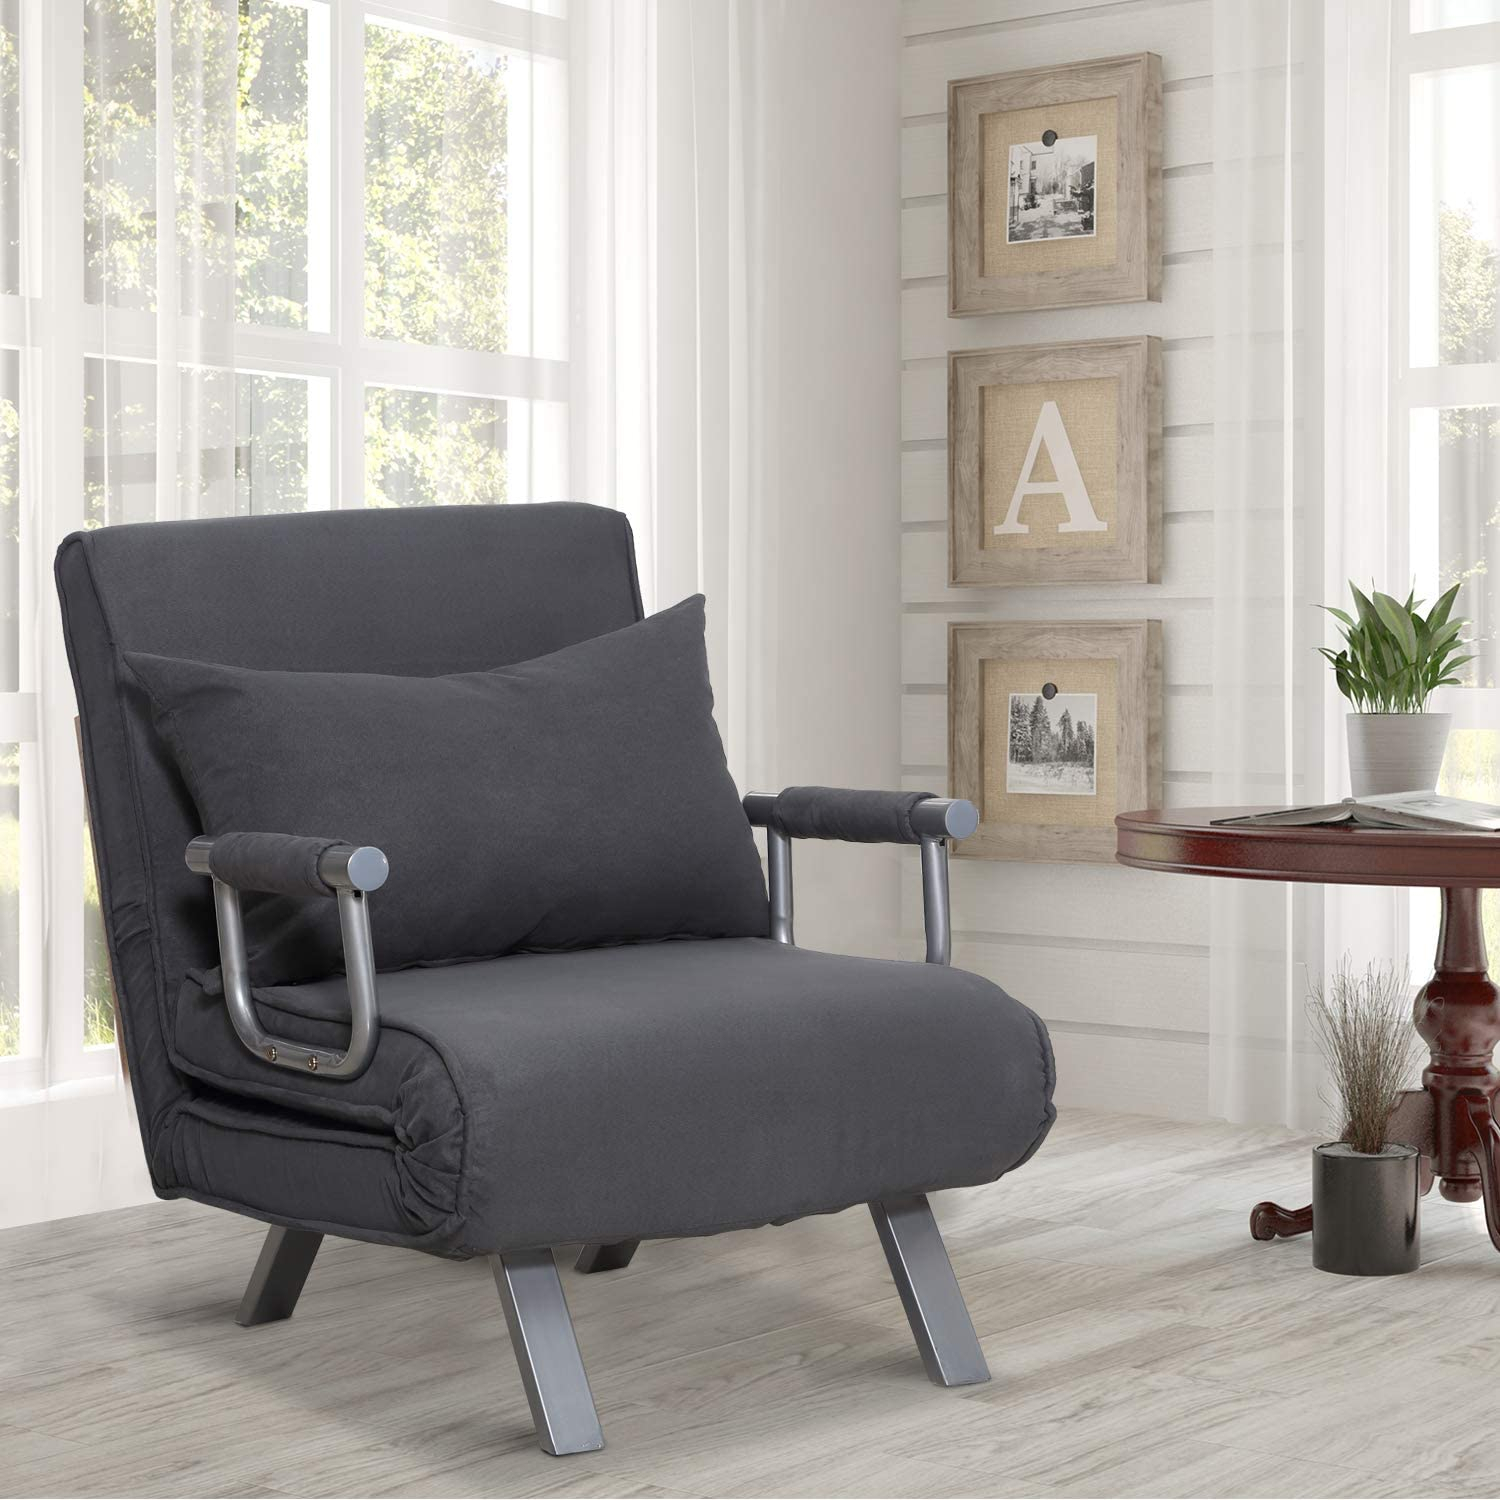 18 Best Sleeper Chairs For Adults | Sleepauthorities In New London Convertible Chairs (View 8 of 15)